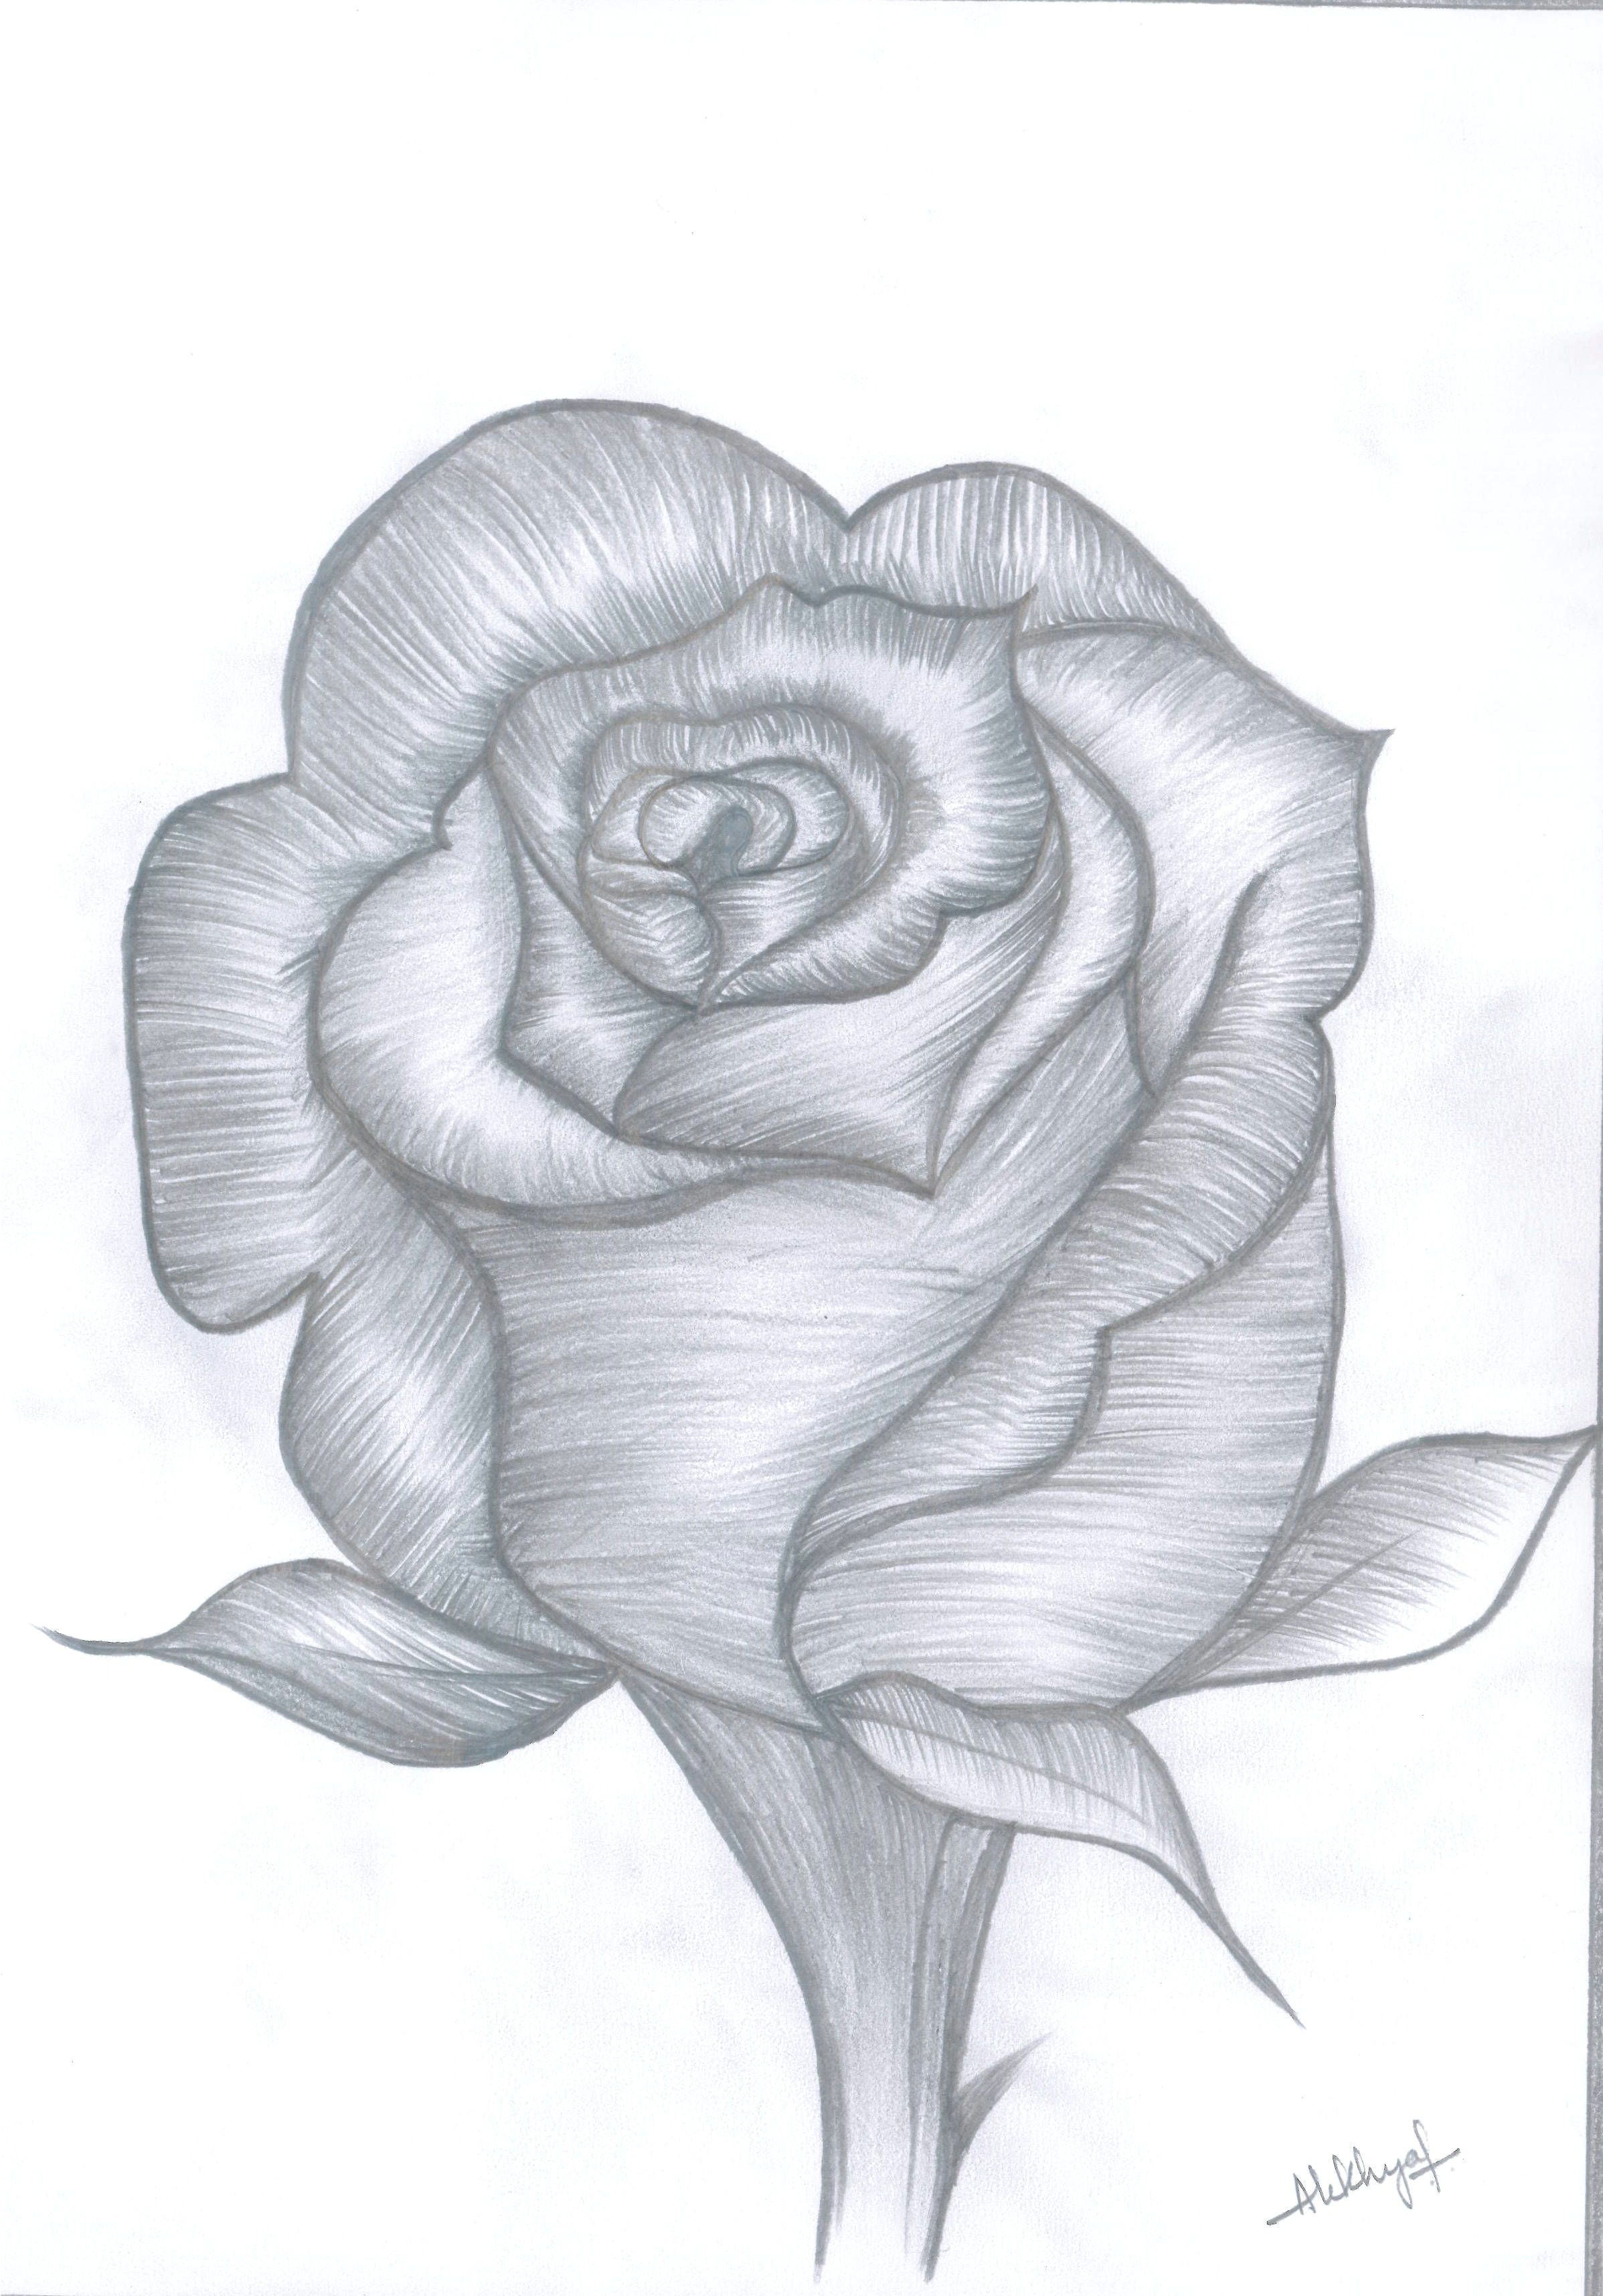 rose bud rose buds pencil drawings sandro graphite drawings color pencil drawings